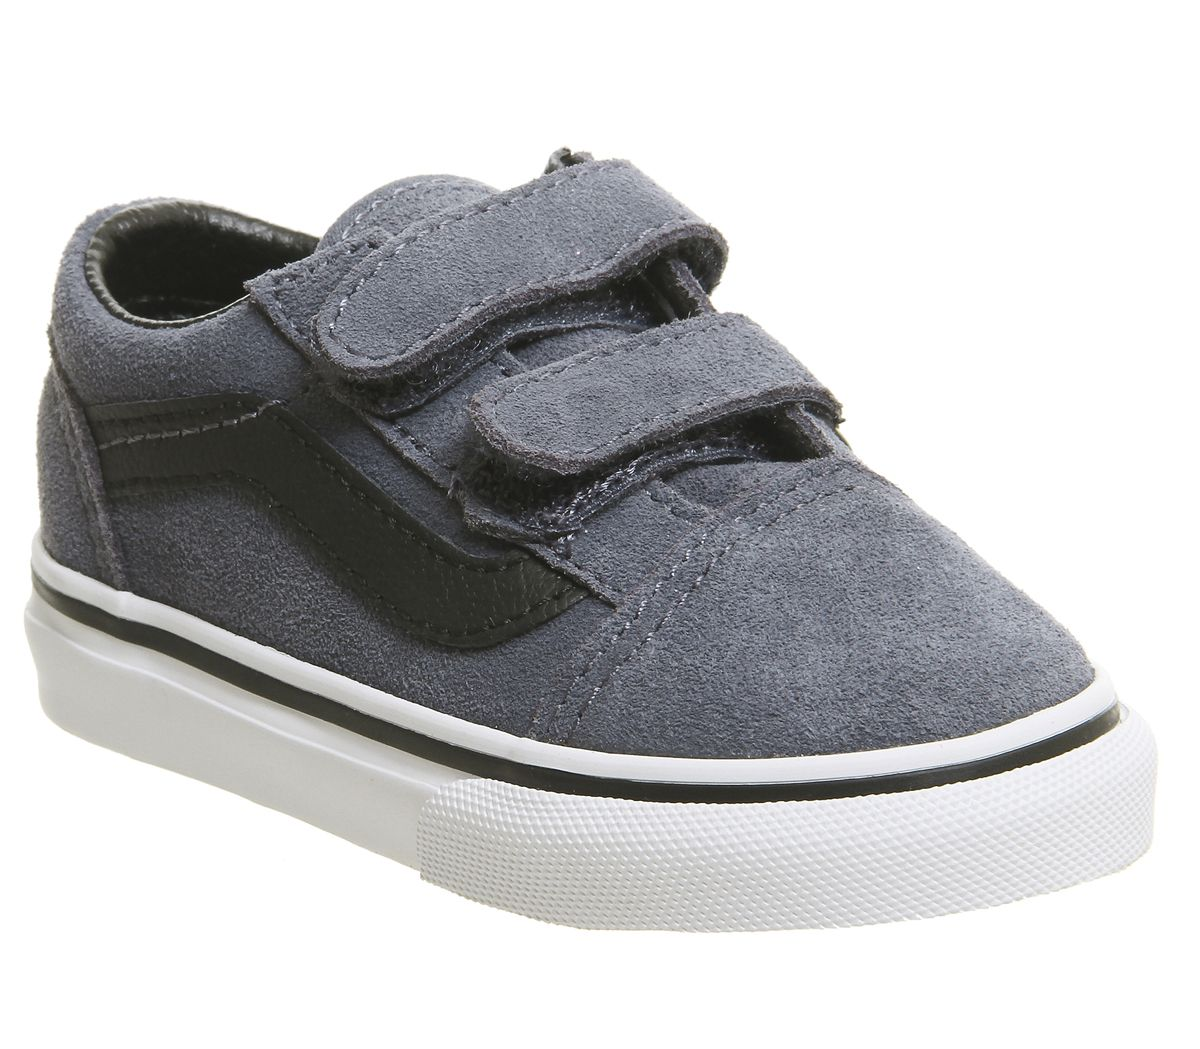 967c9cb072 Vans Old Skool Toddler Trainers Grisaille Blue Black White - Unisex